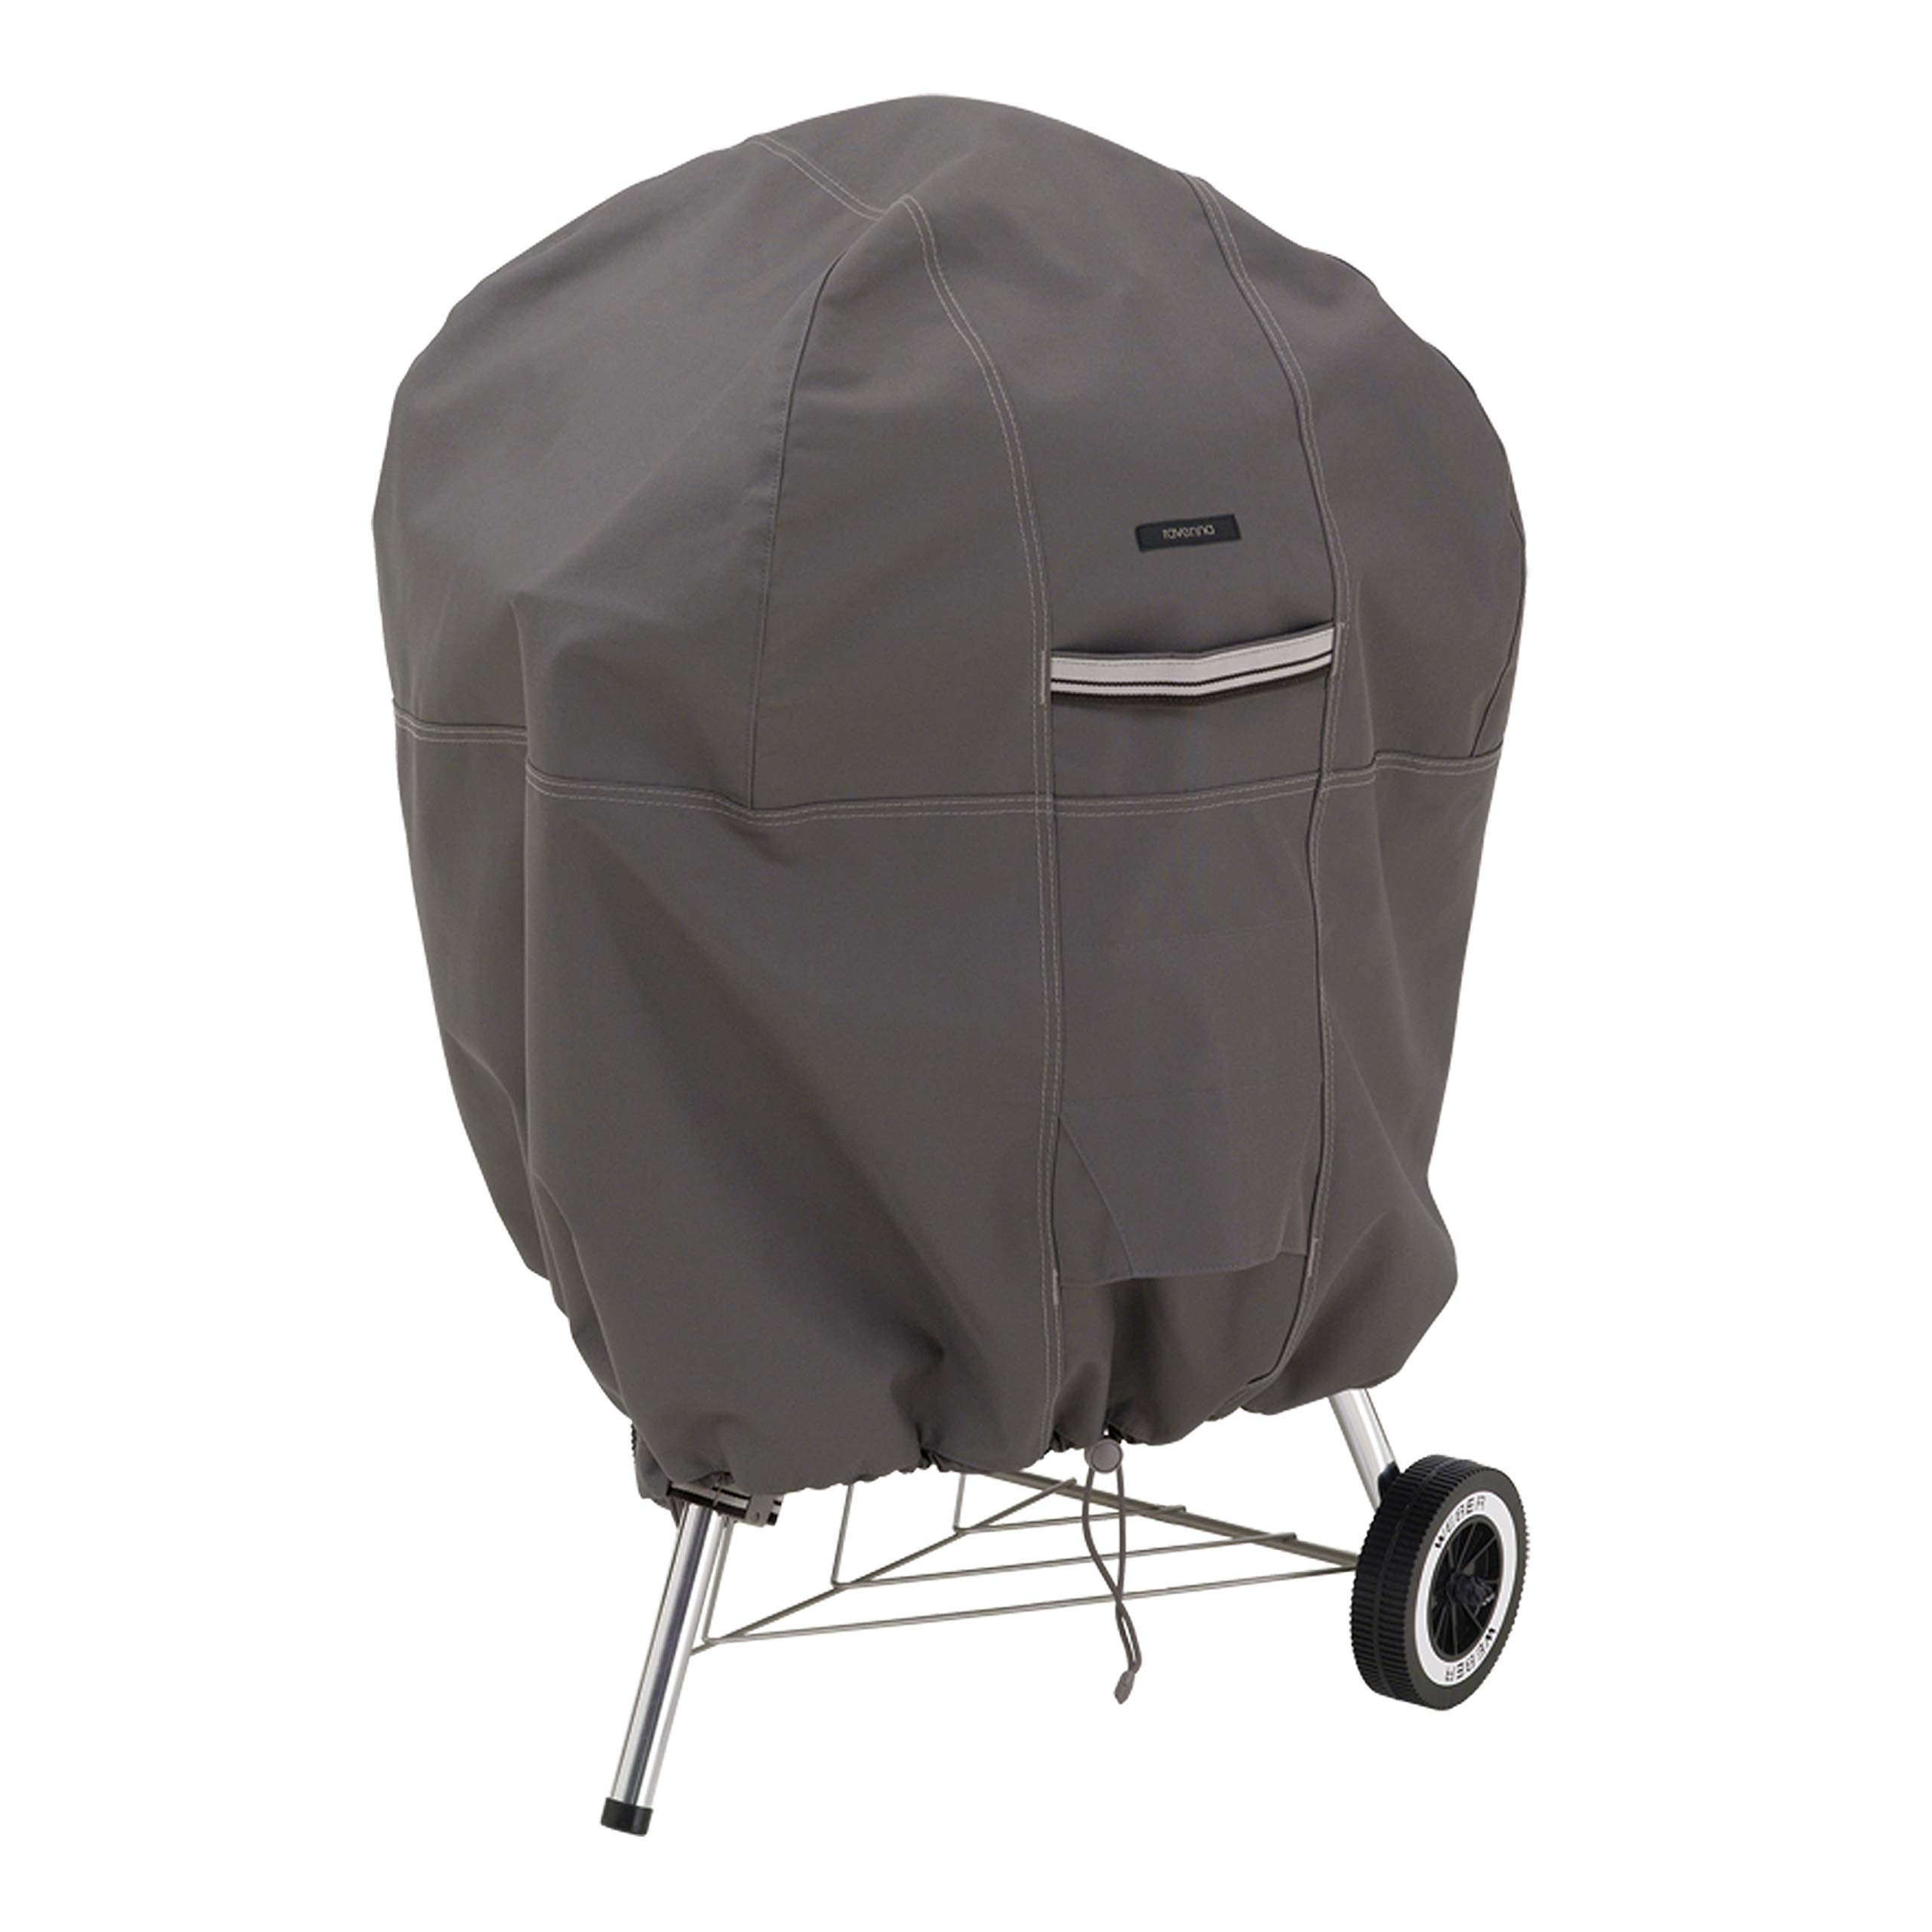 Classic Accessories Ravenna Water-Resistant 30 Inch Kettle BBQ Grill Cover